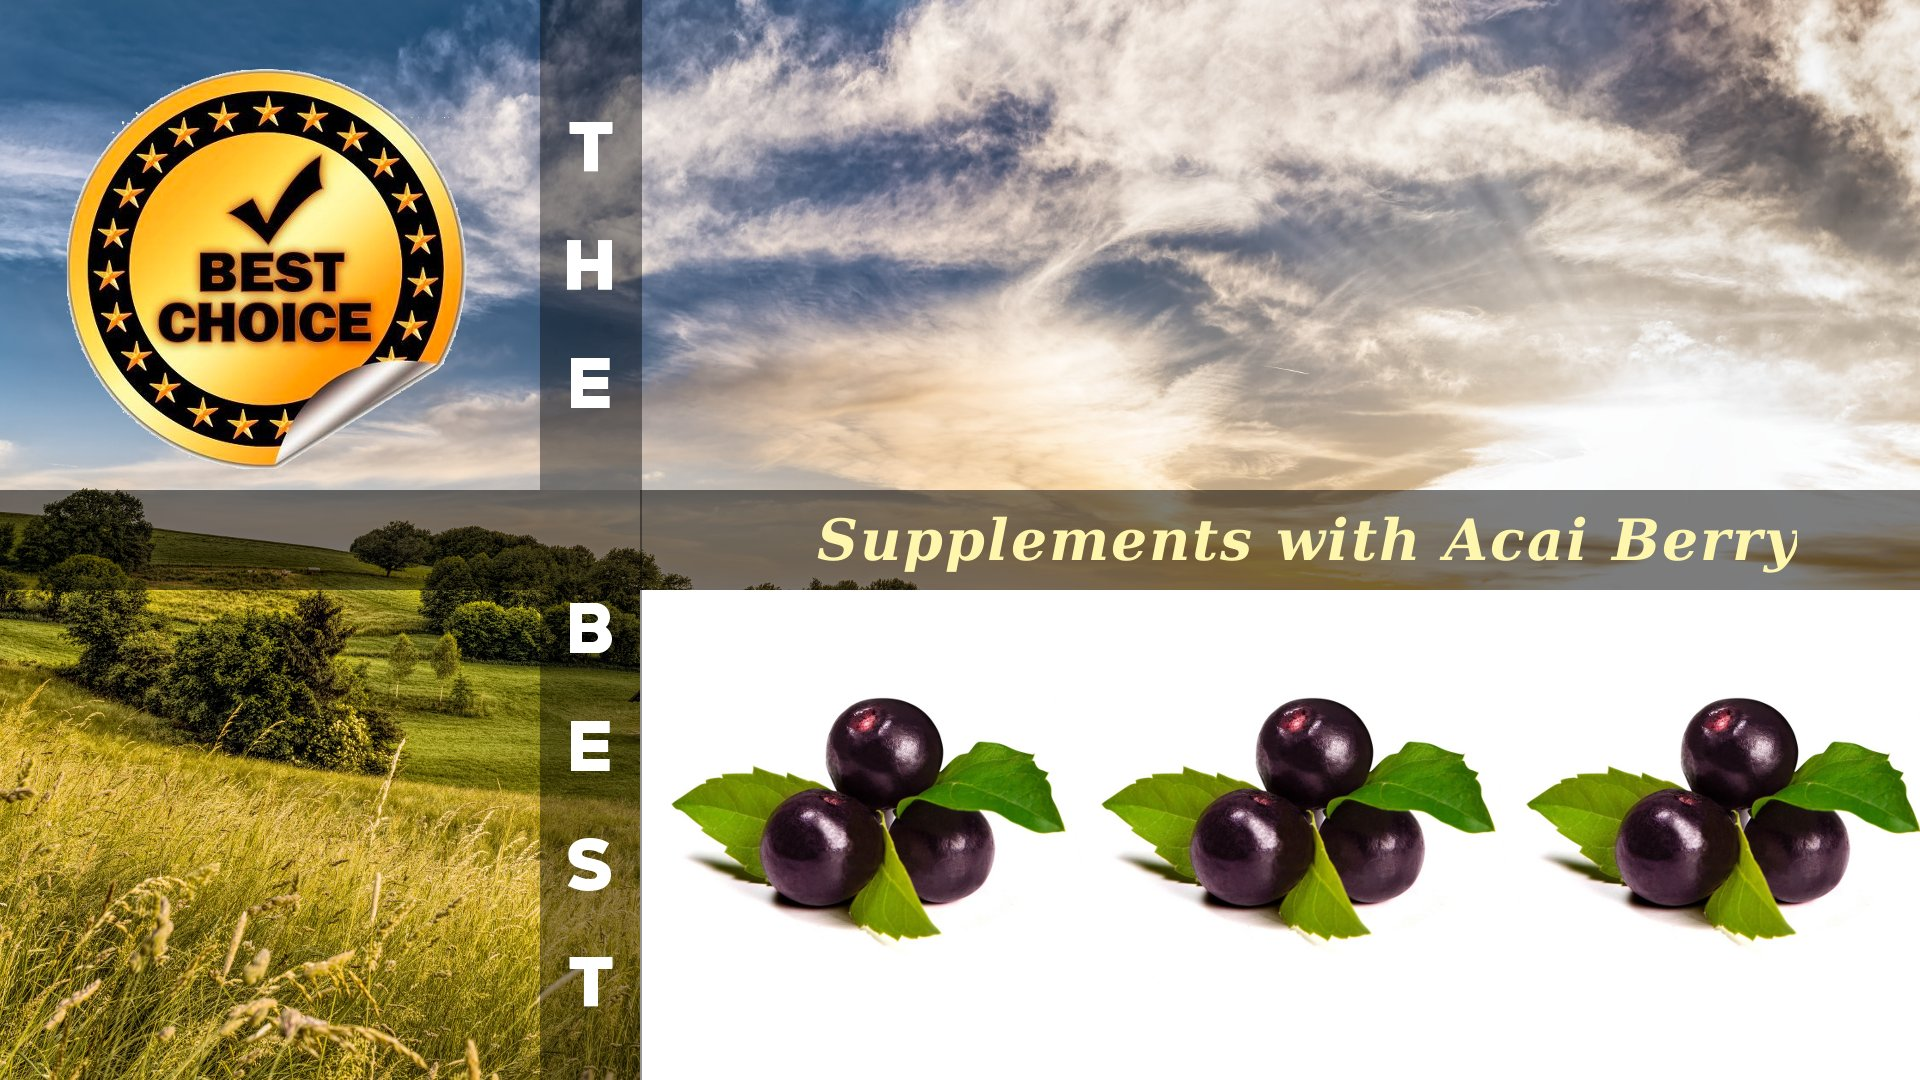 The Supplements with Acai Berry